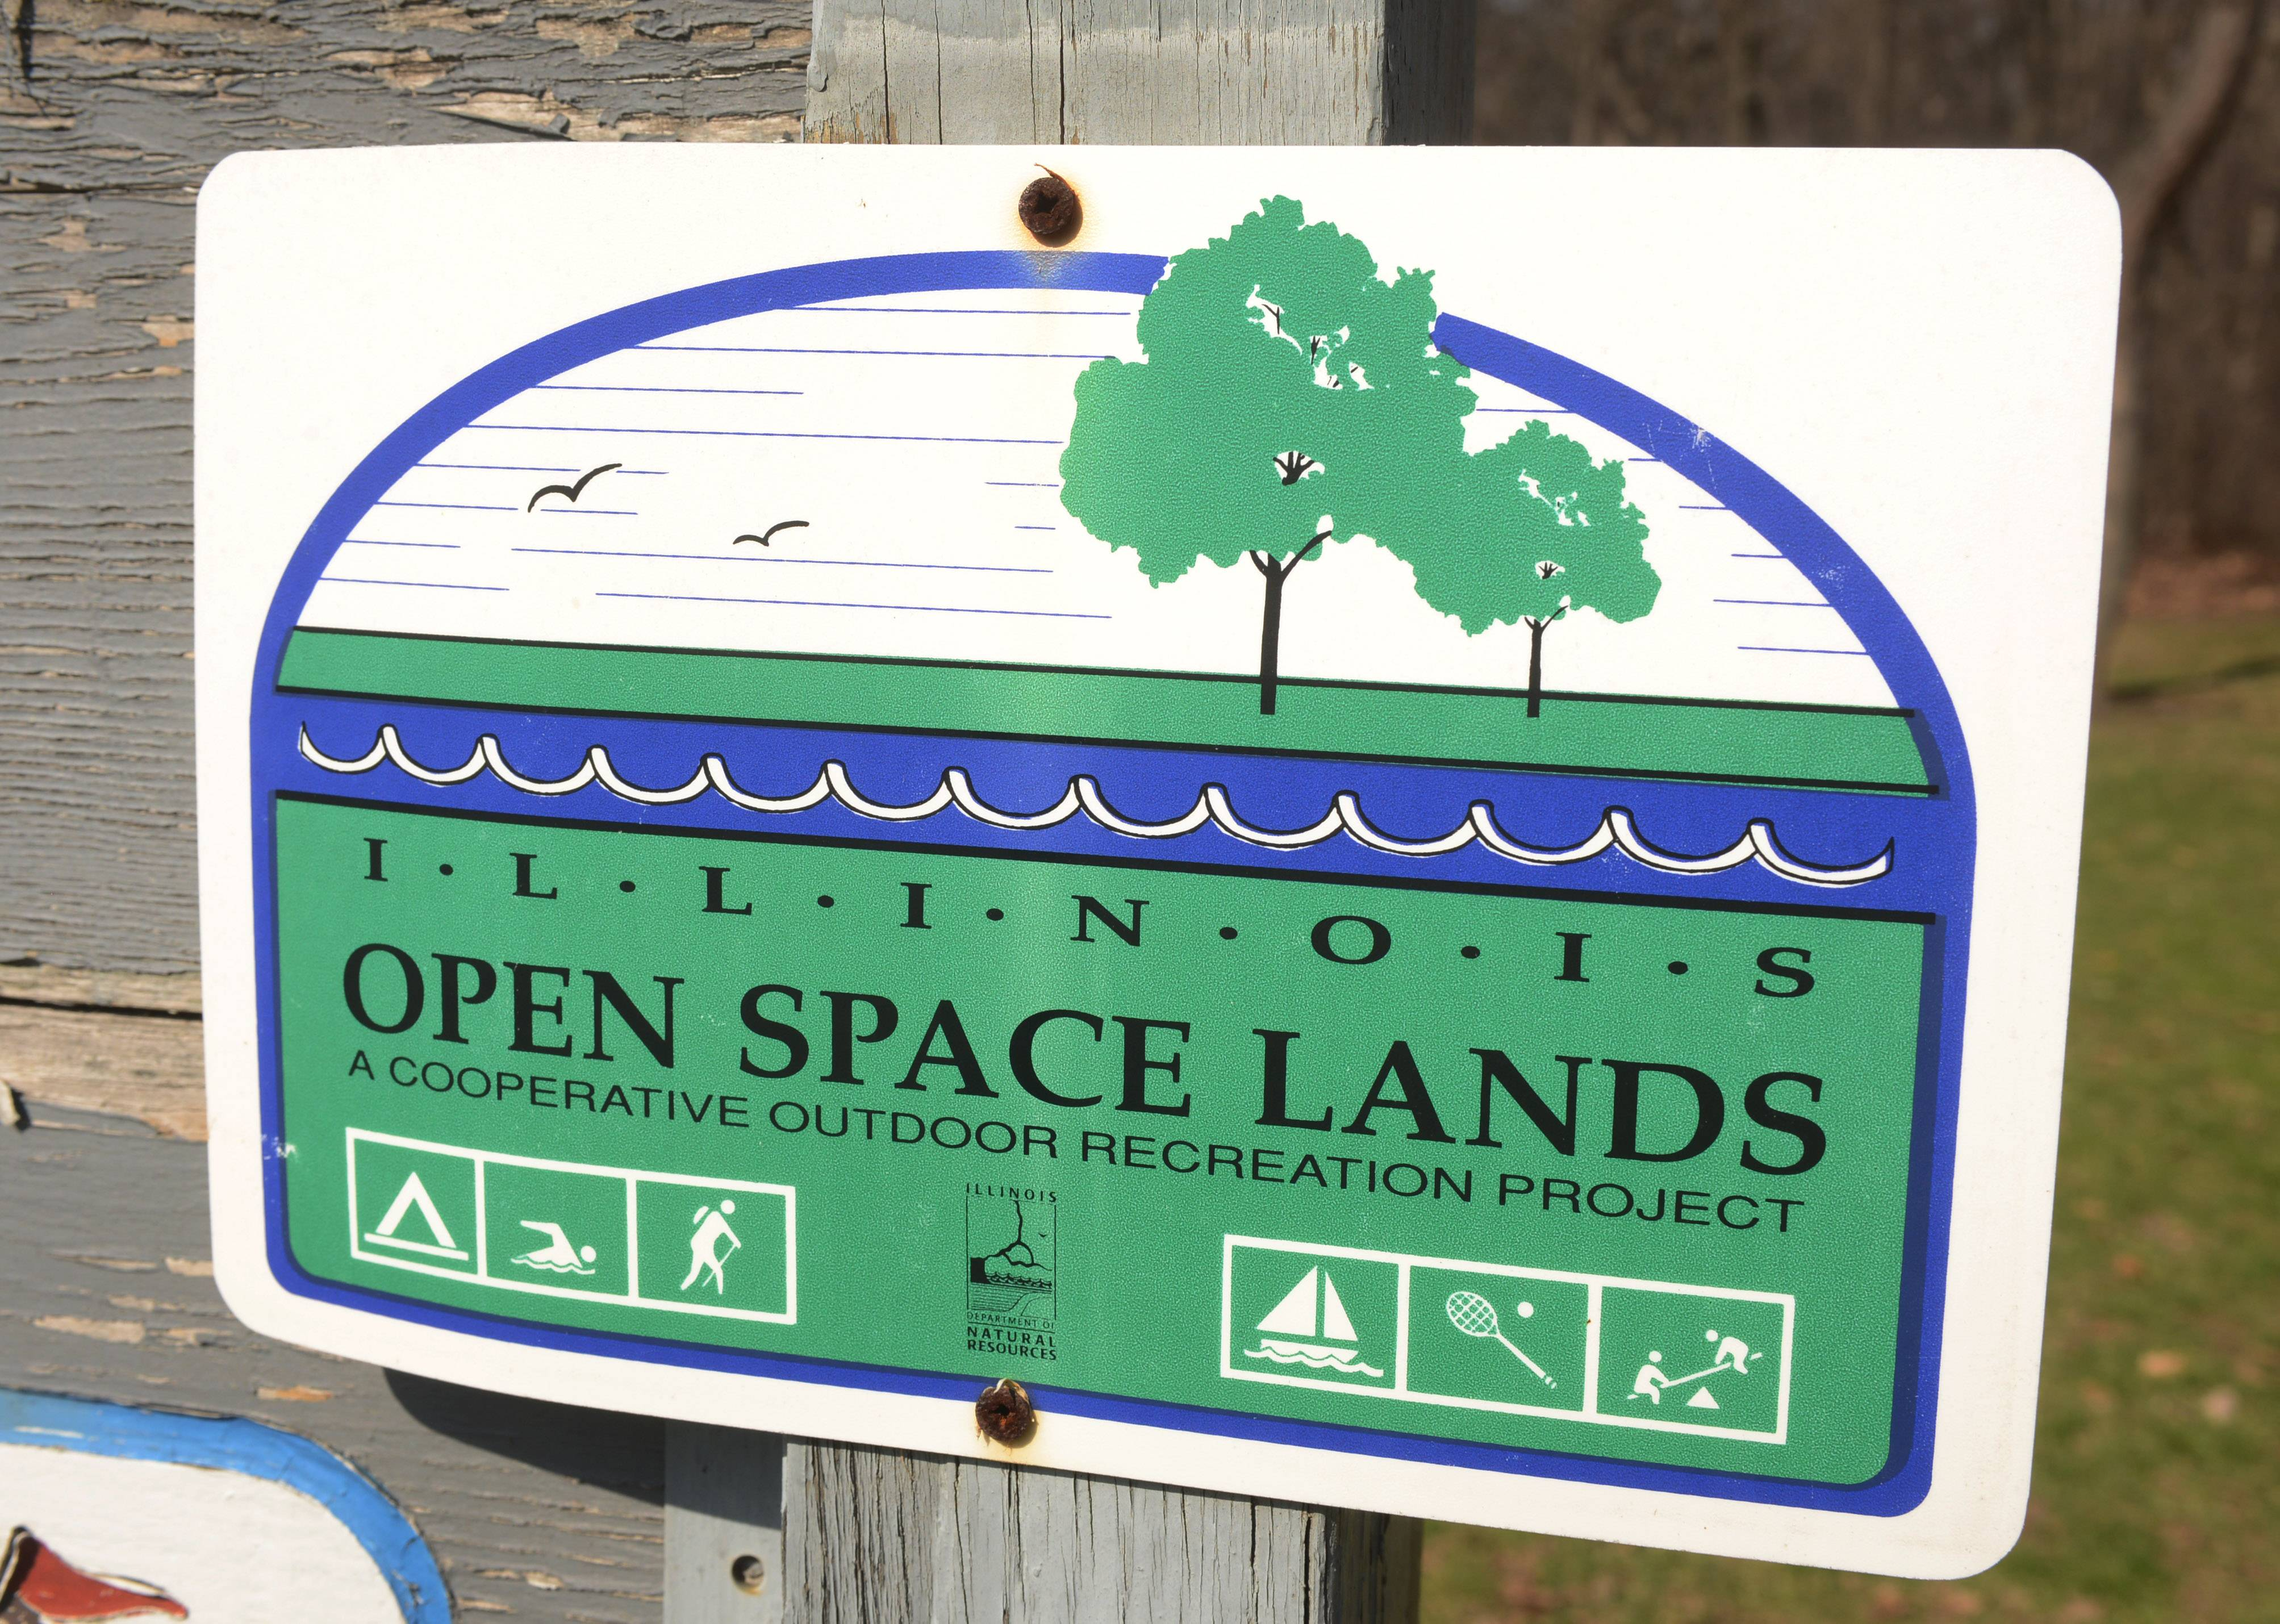 An Illinois Open Space Lands sign at Greenleaf Woods Park in Island Lake.